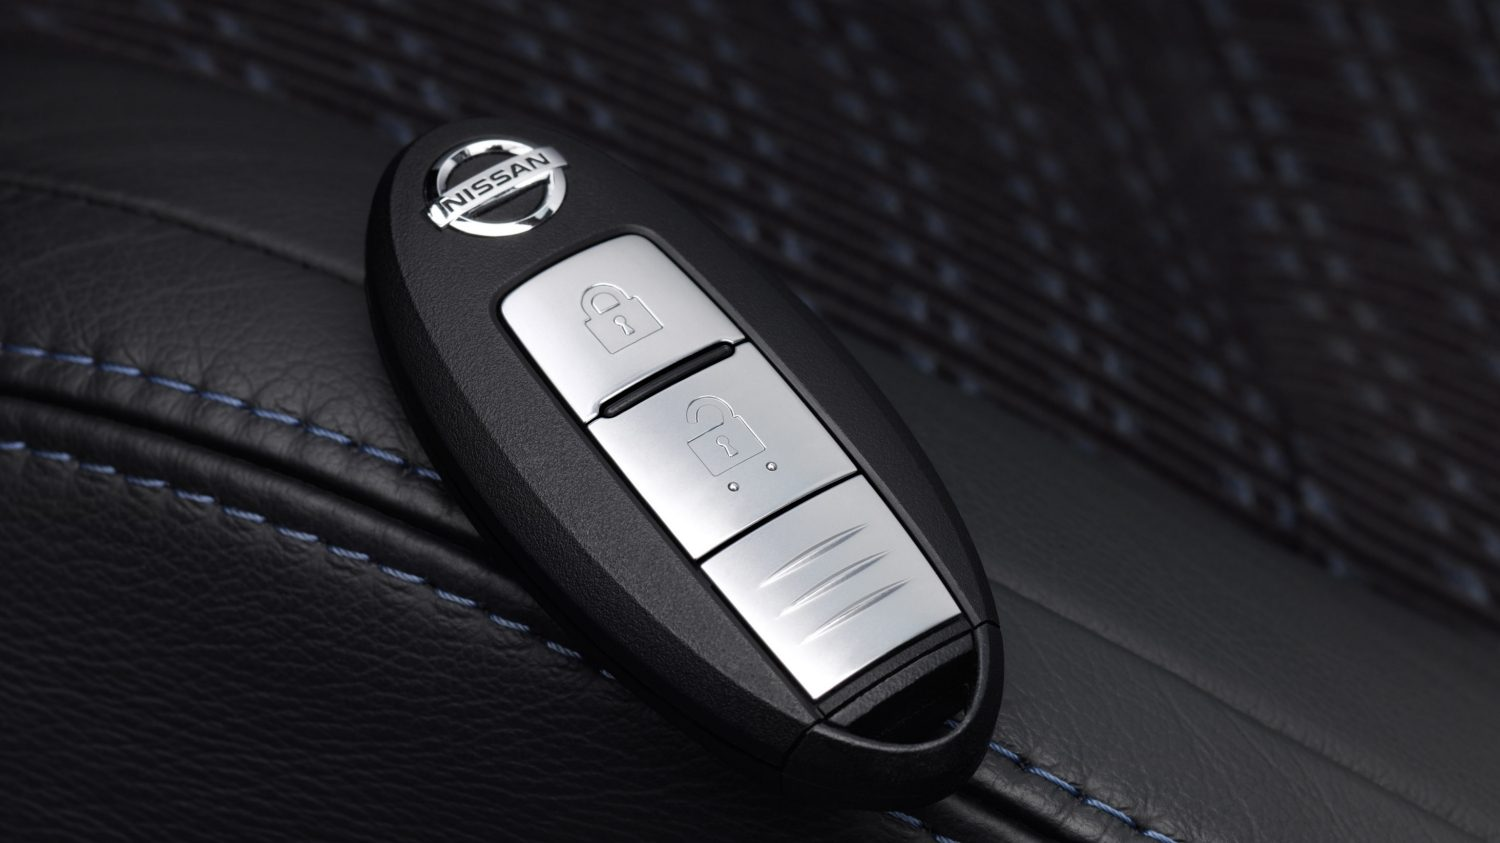 NISSAN NOTE – NISSAN INTELLIGENT KEY